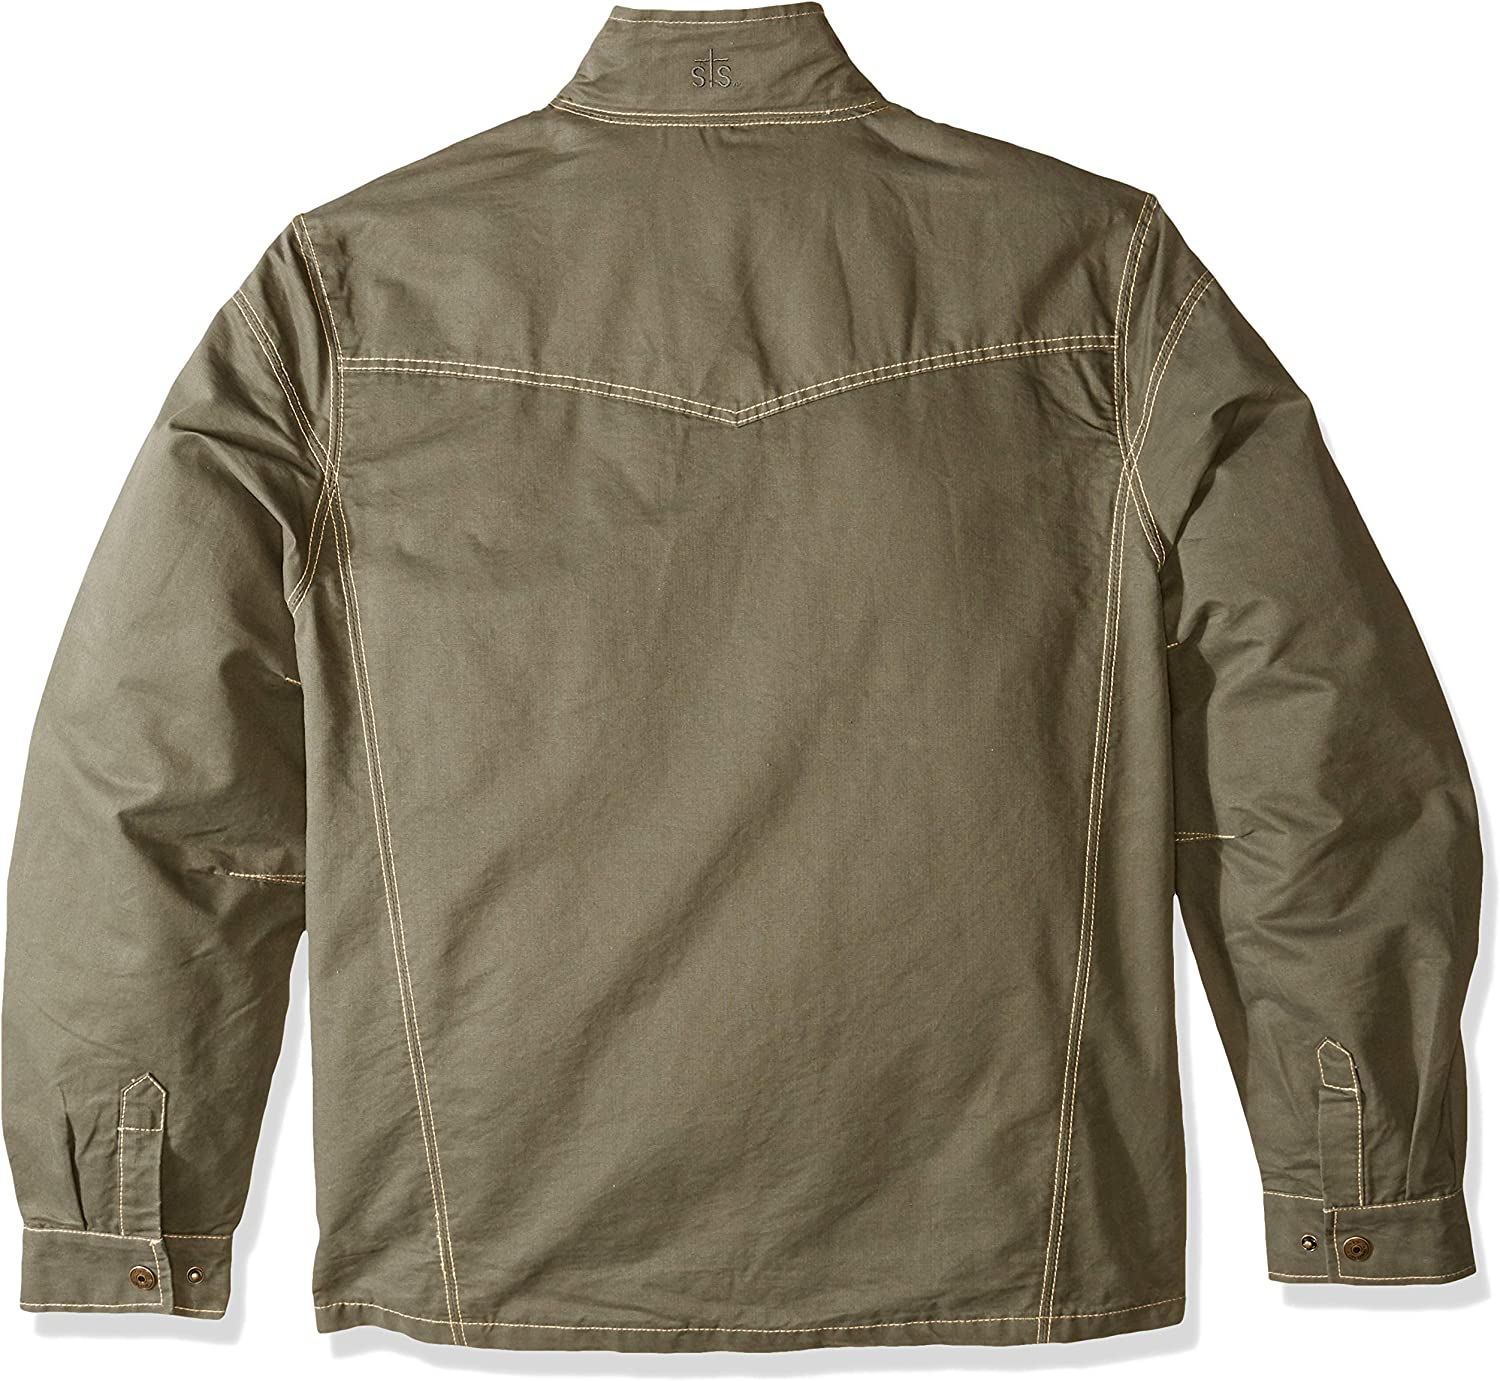 STS Ranchwear Mens Soft Cotton Twill Jacket loden, Extra Large